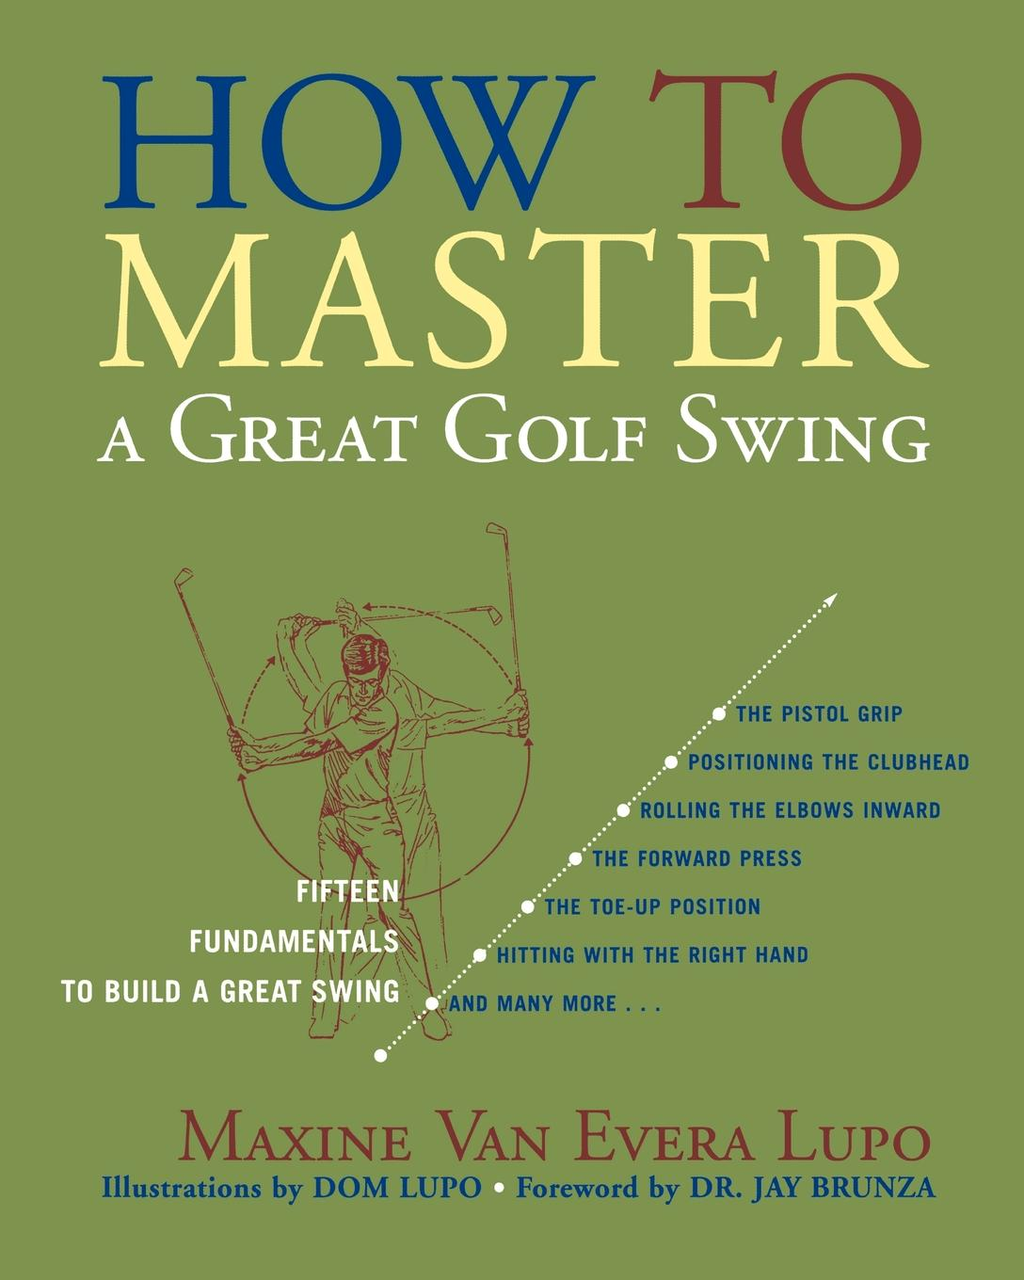 How to Master a Great Golf Swing By: Maxine Van Evera Lupo,Dom Lupo